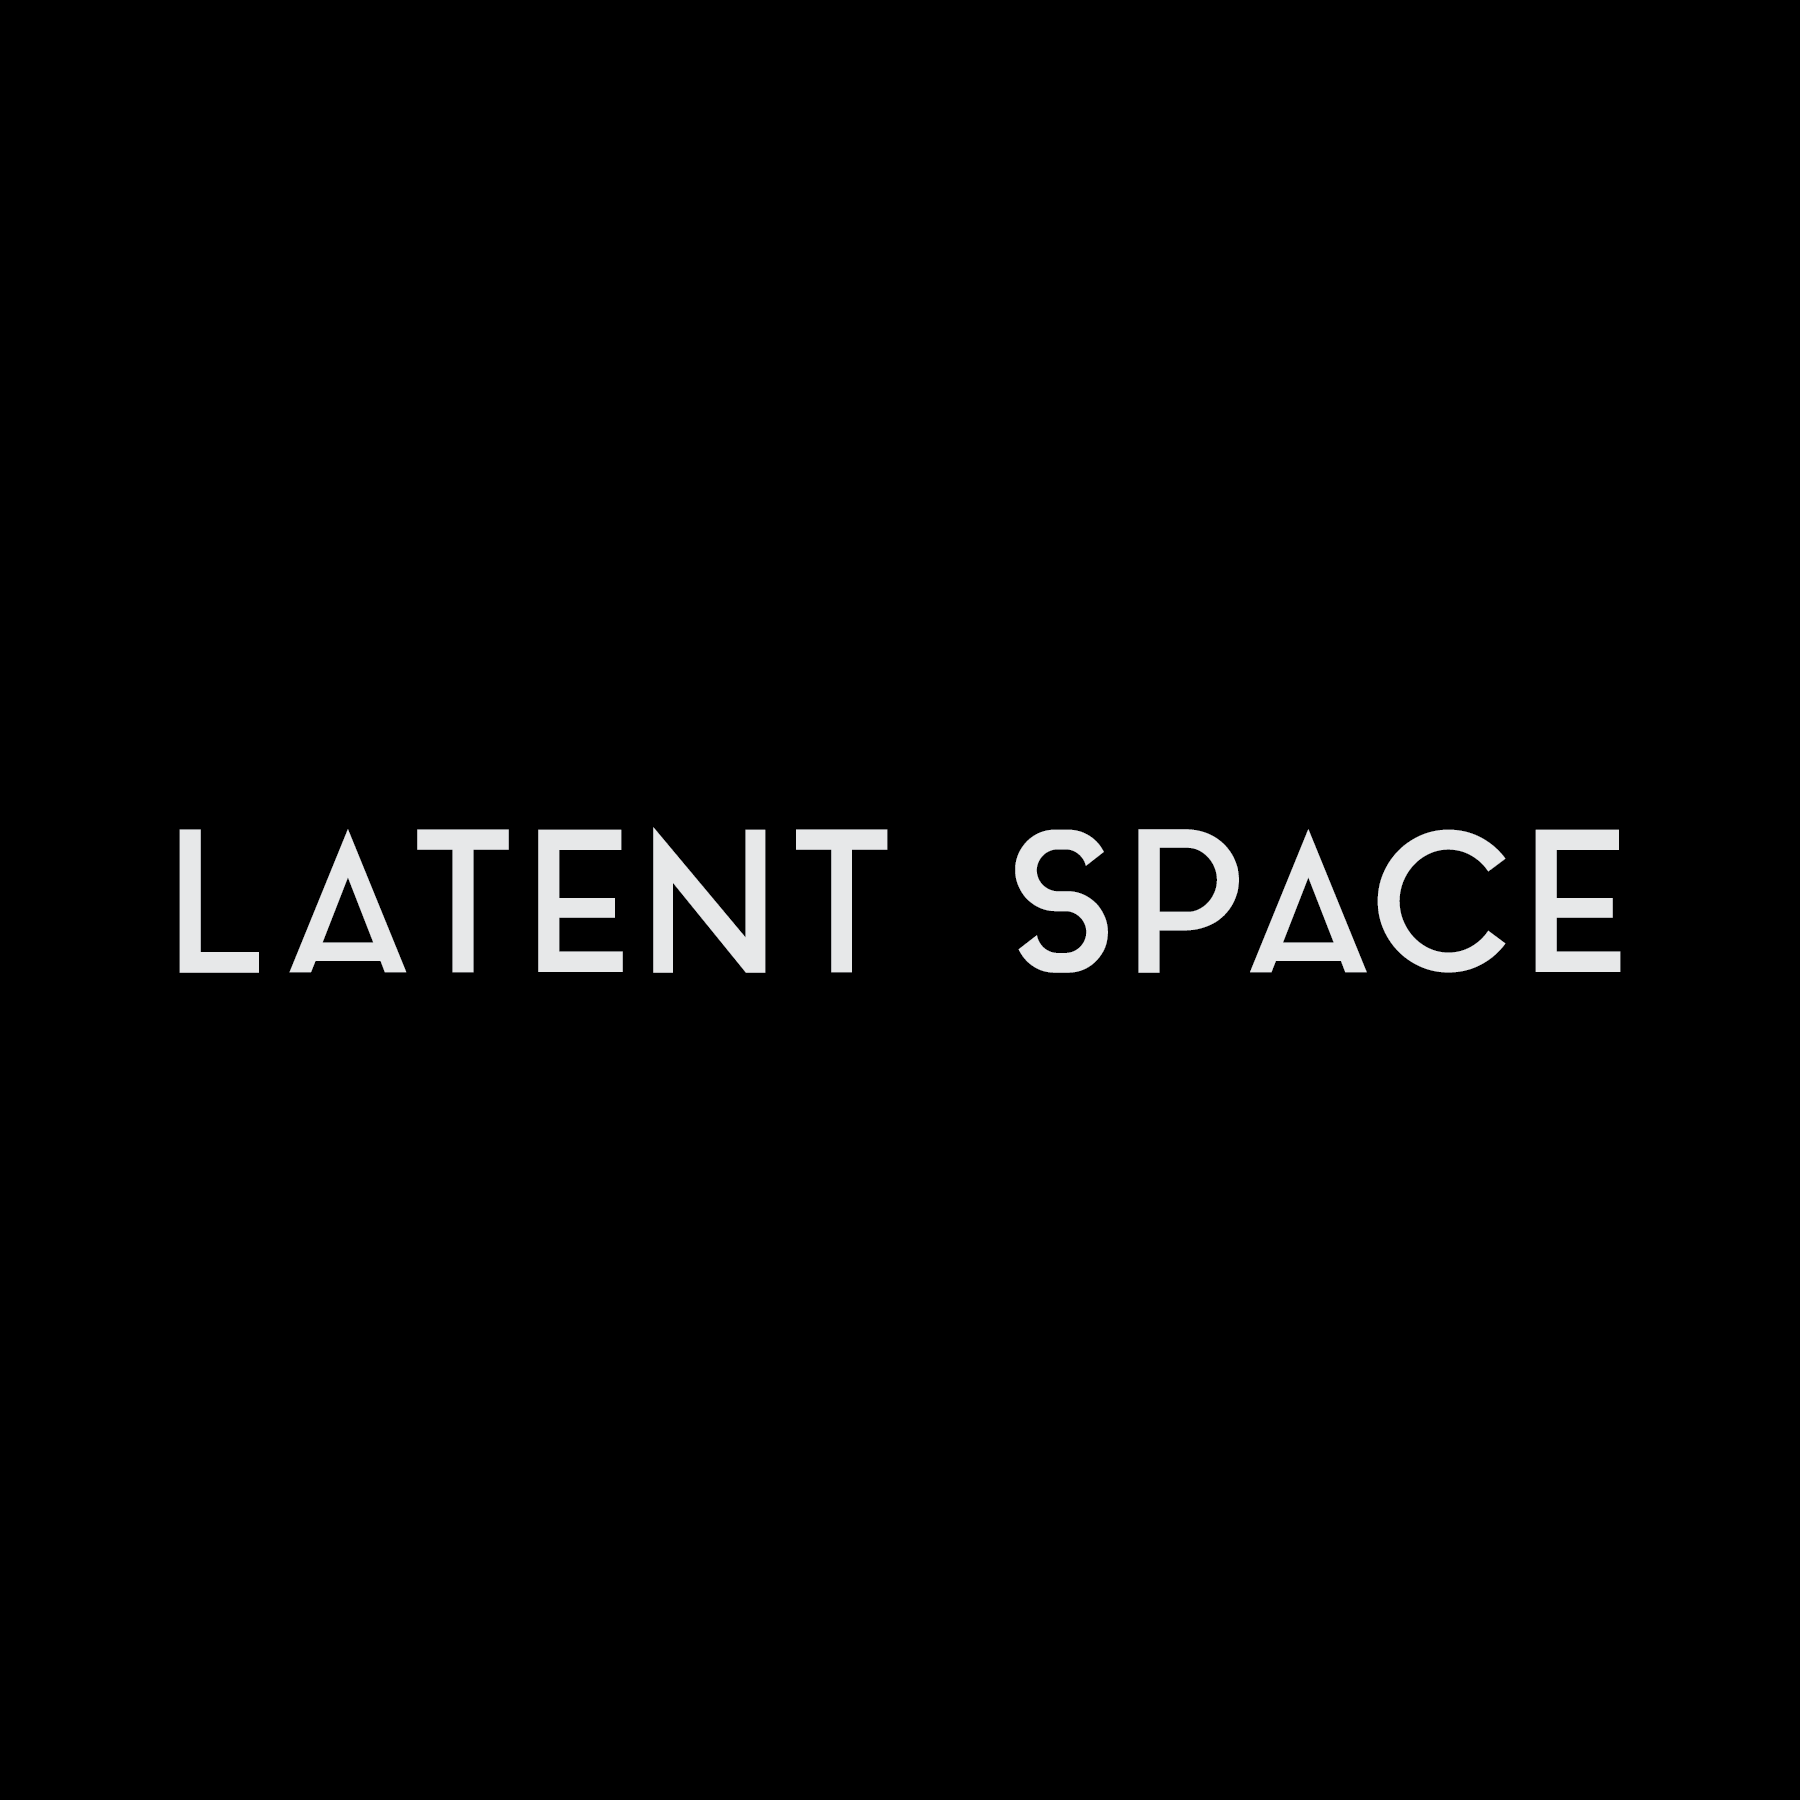 Latent Space - Open by appointment.